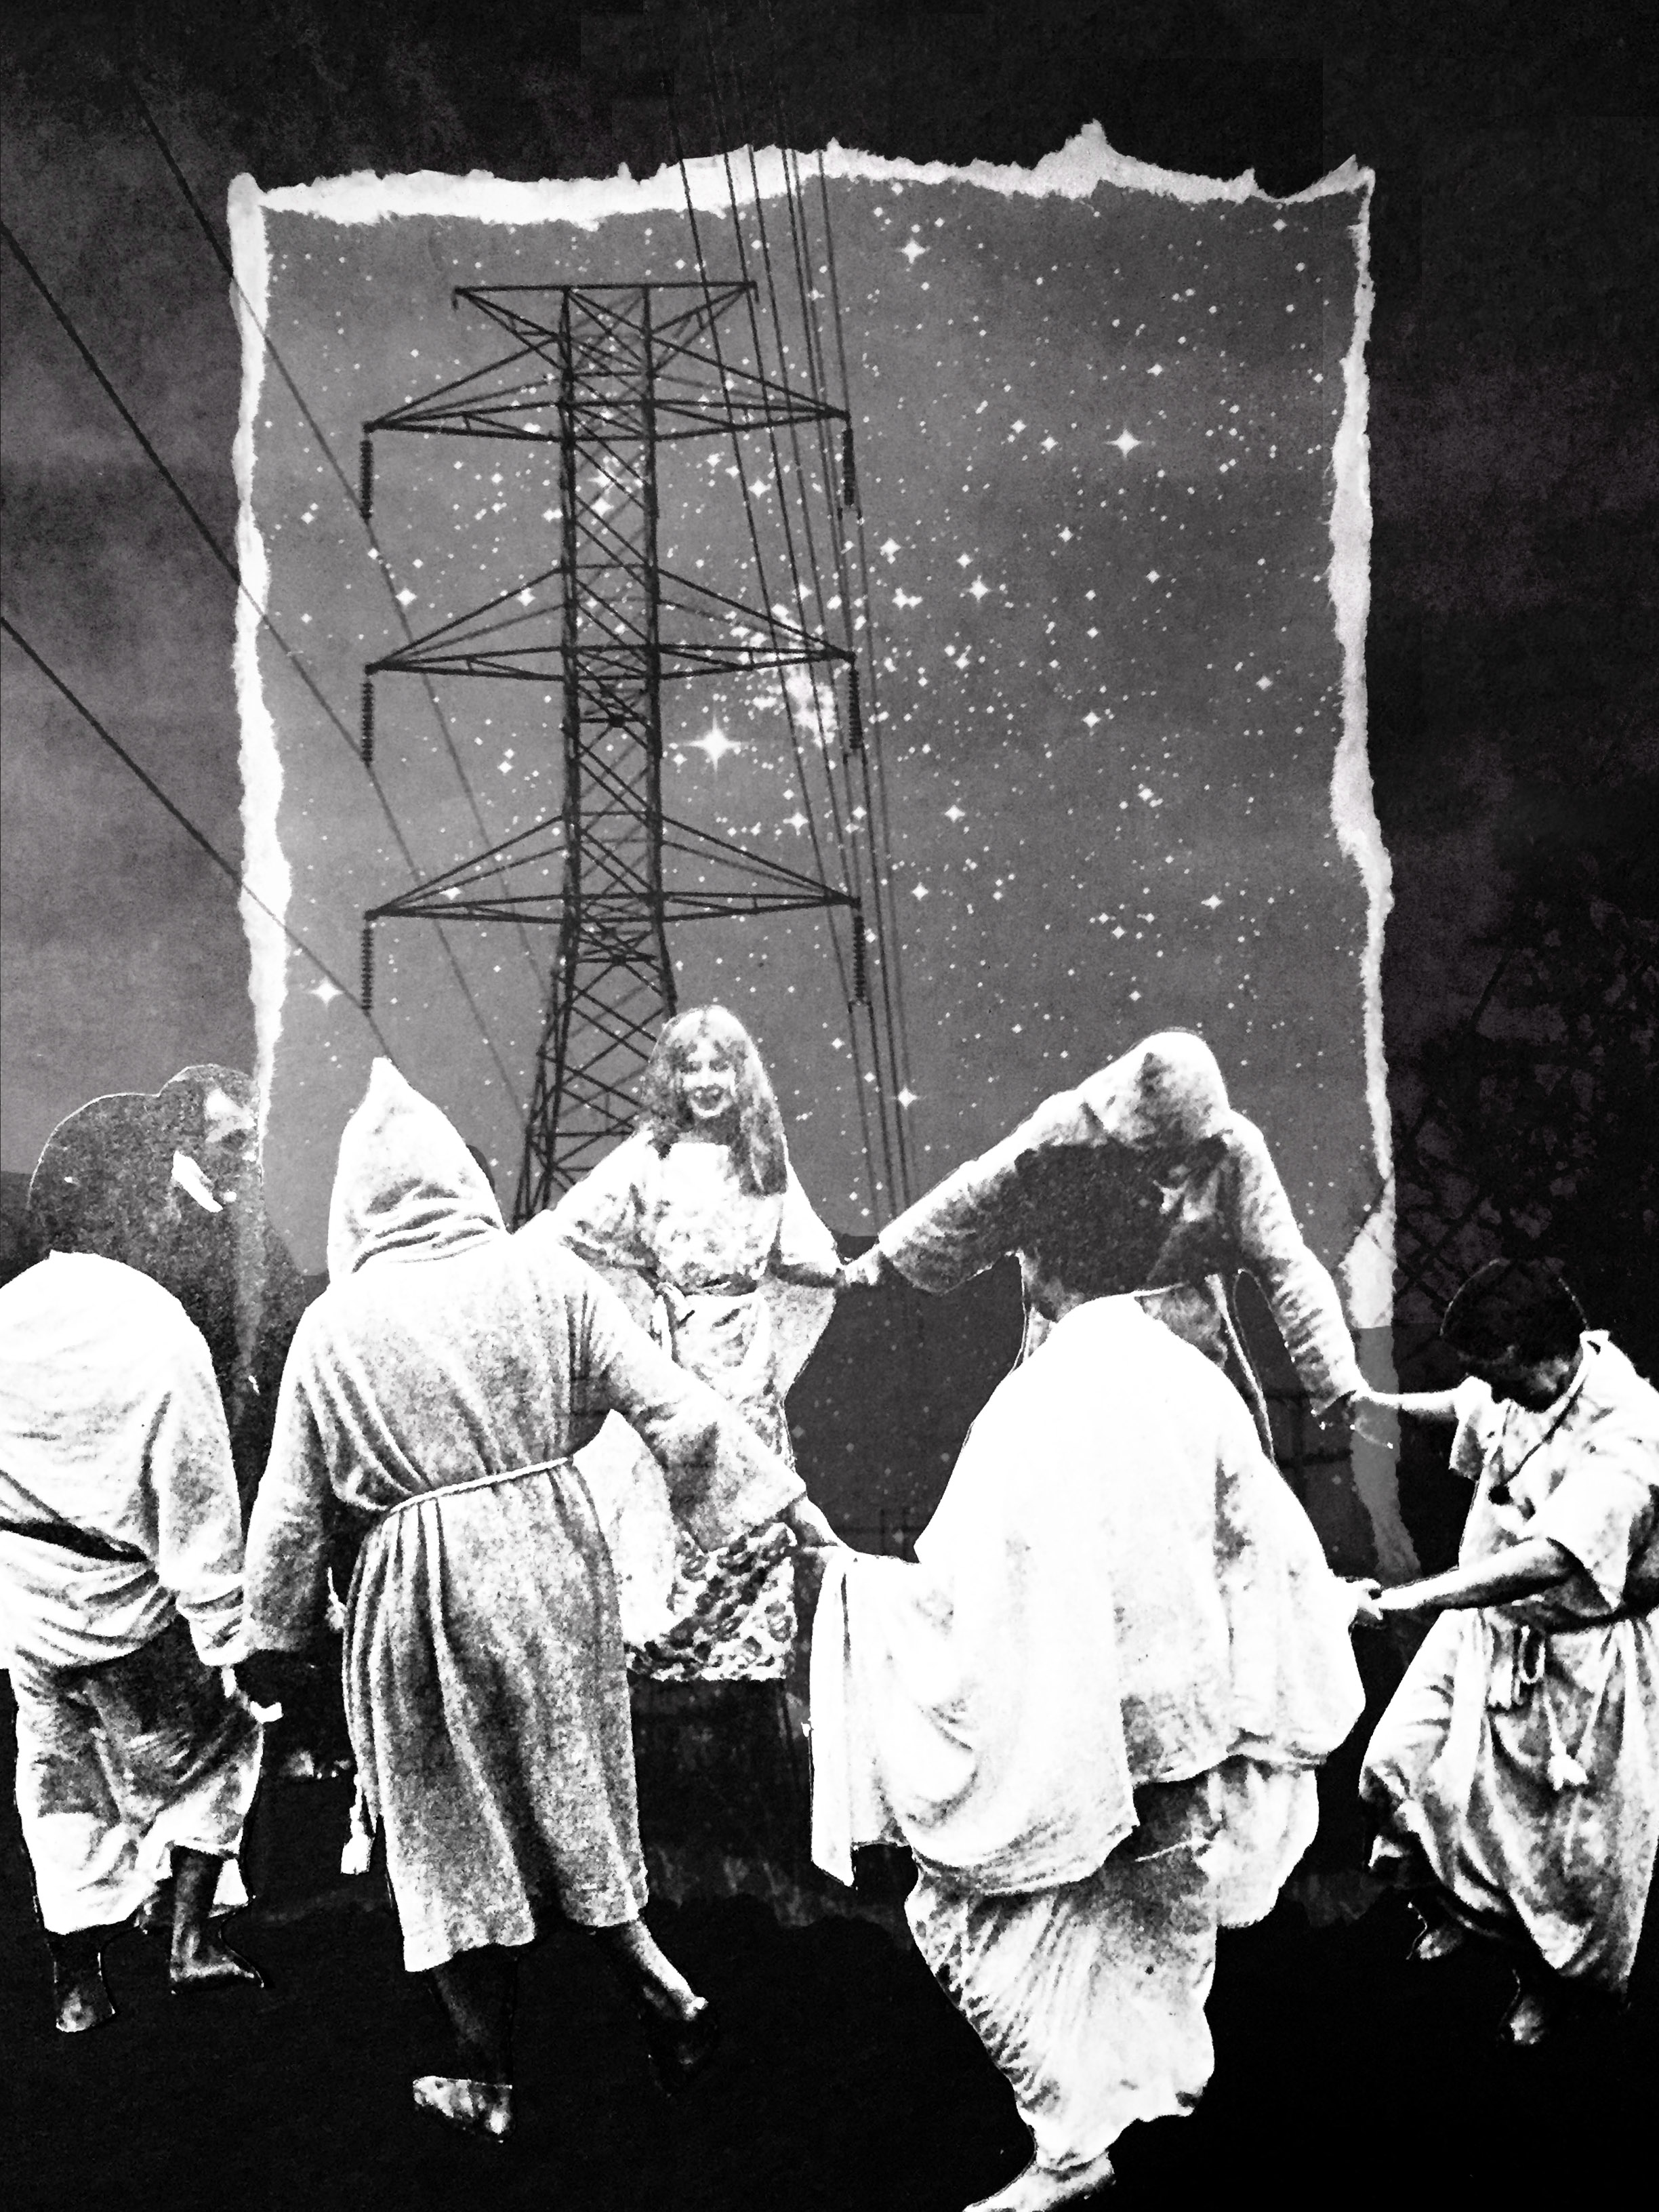 Cover Art for Pylon People - Hookland Transmission #1: Starfall Common